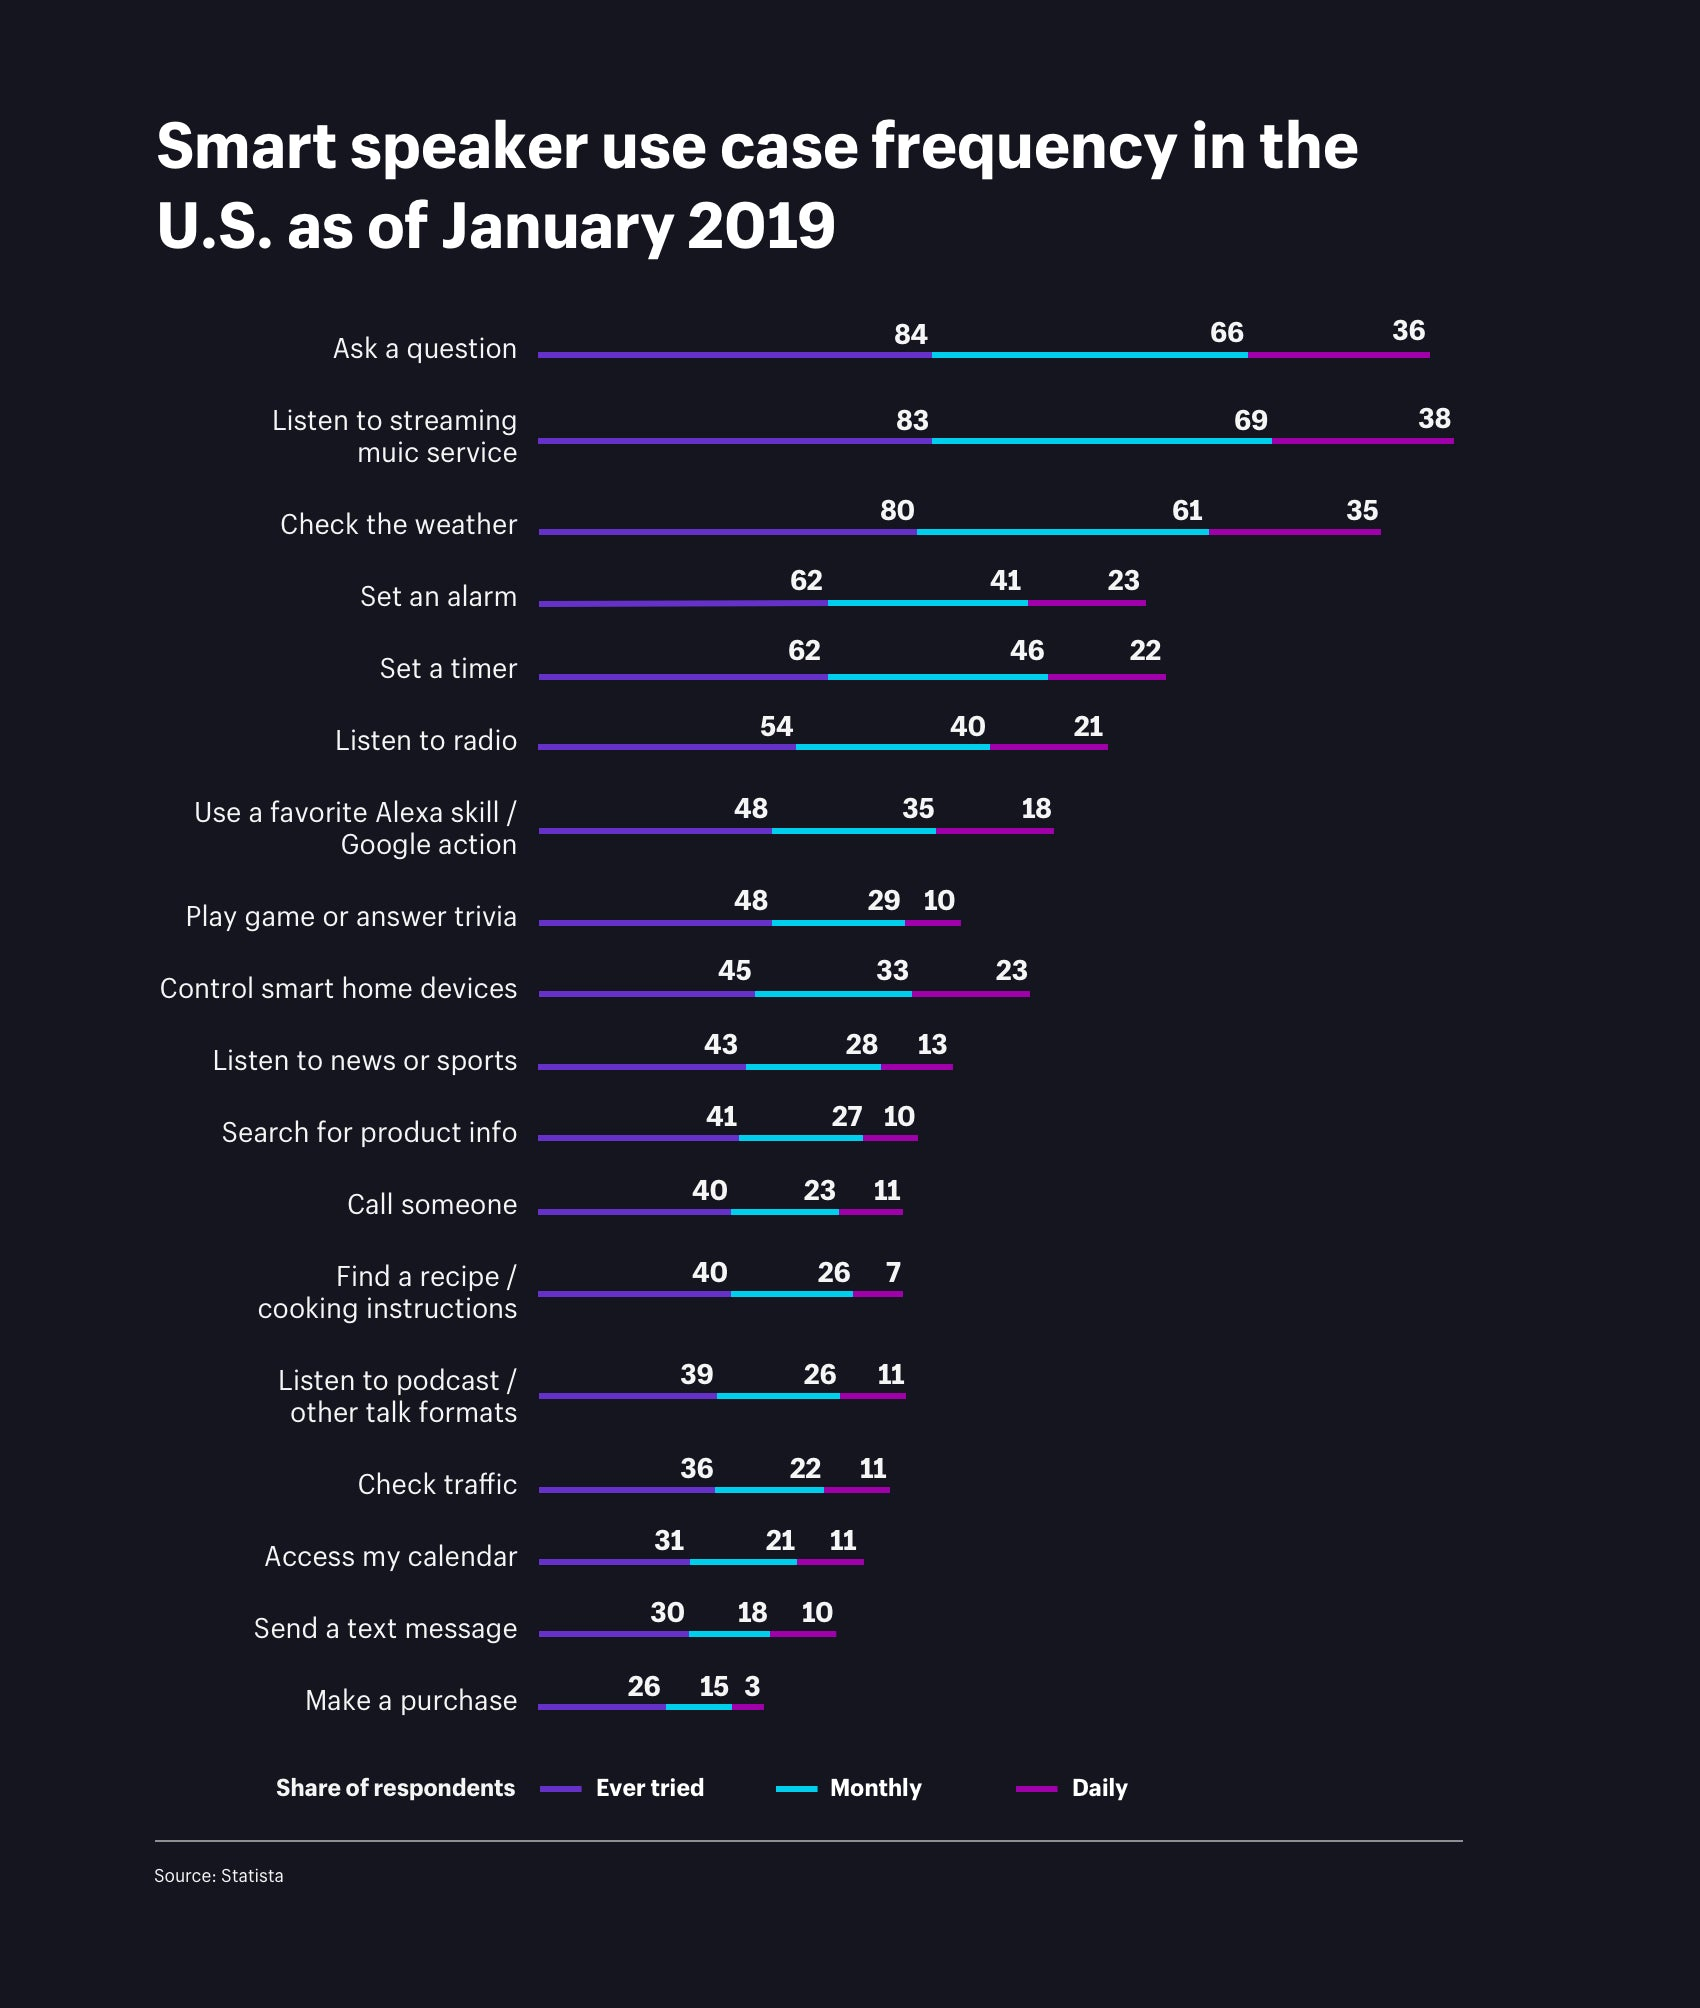 Smart speaker user case frequency in the US as of January 2019